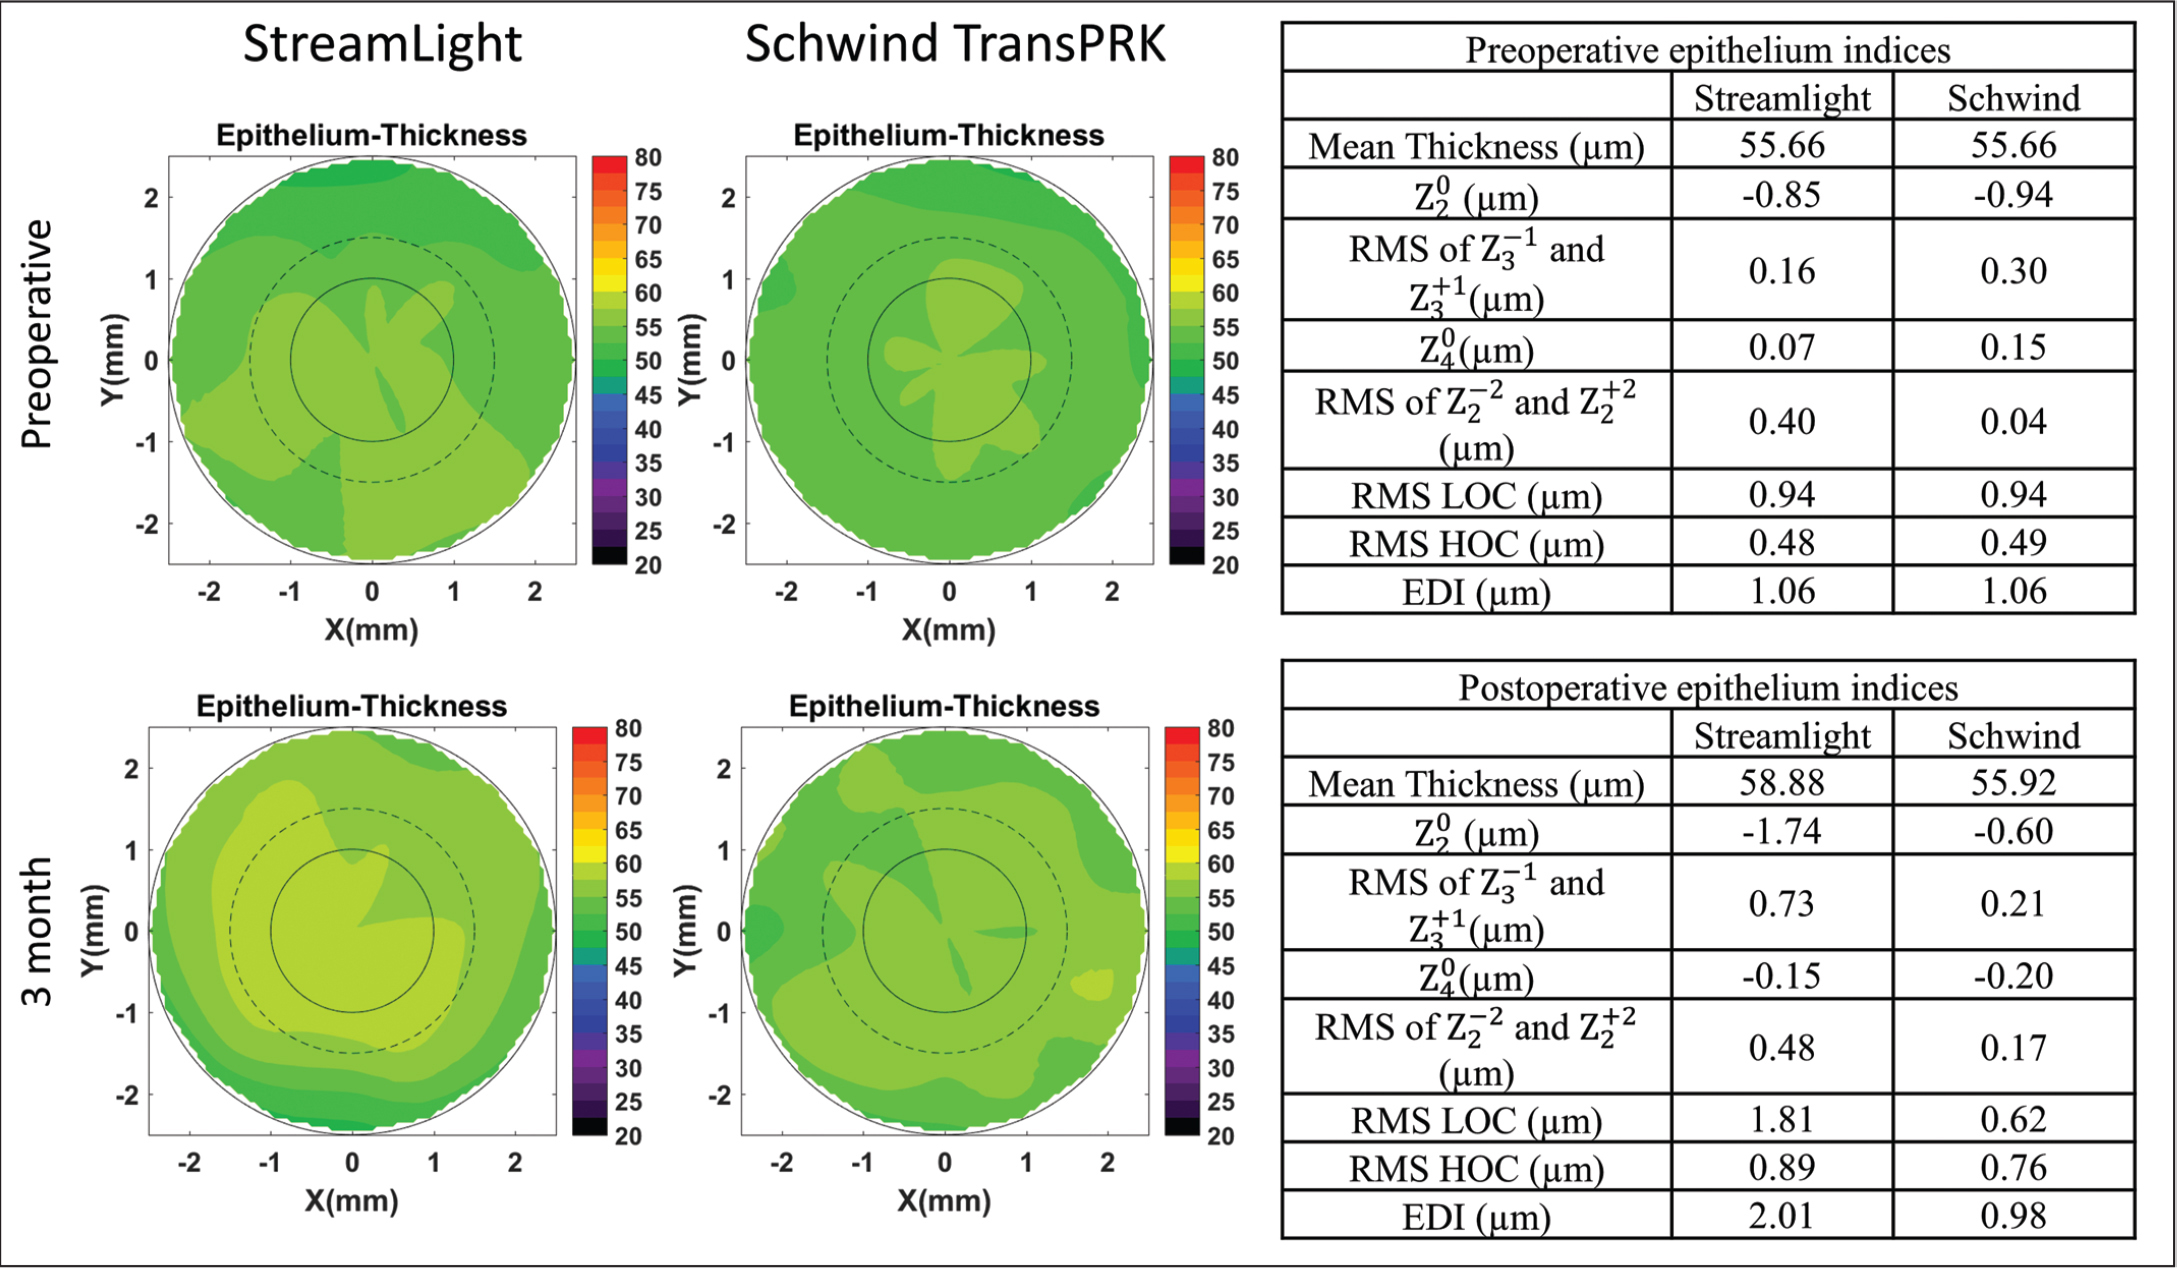 A comparison of epithelium thickness remodeling between two eyes of a patient (before and after surgery). A summary of the epithelium Zernike indices is listed in the table next to the contour plots. Streamlight is manufactured by Alcon Laboratories, Inc. RMS = root mean square; LOC = lower order coefficients; HOC = higher order coefficients; EDI = Epithelium Distortion Index; TransPRK = transepithelial photorefractive keratectomy